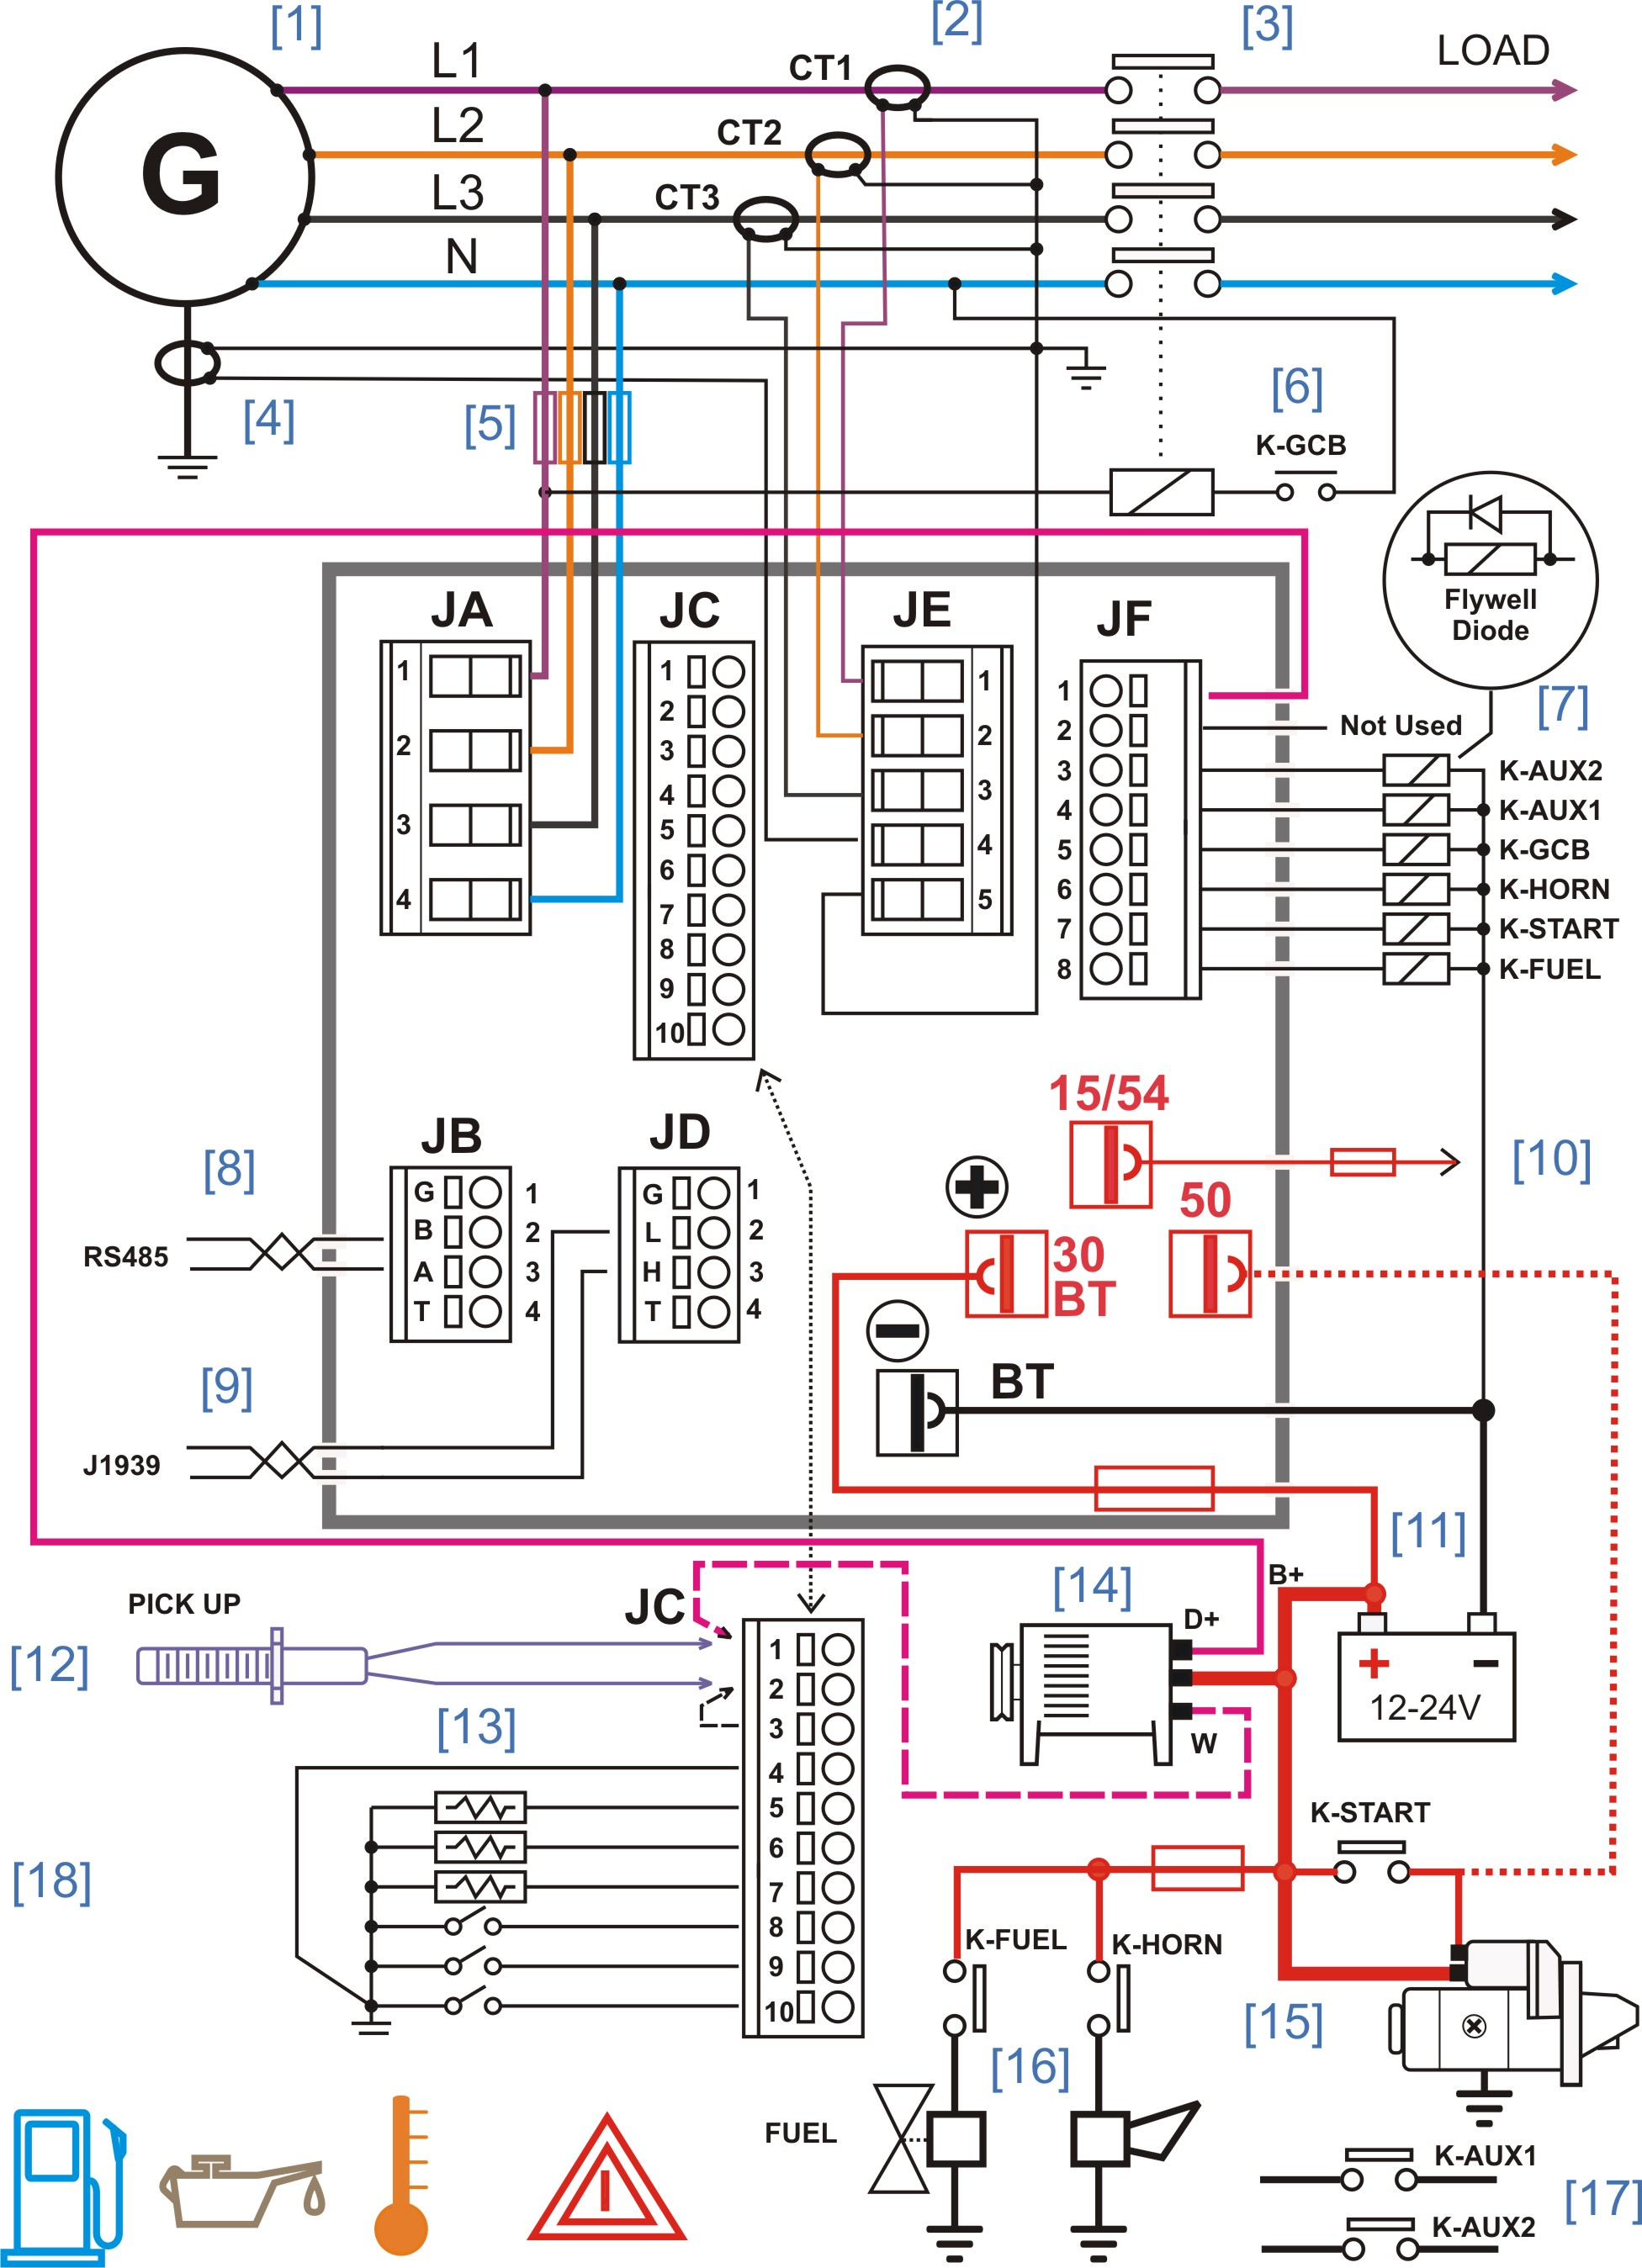 Diesel Generator Control Panel Wiring Diagram diesel generator control panel wiring diagram genset controller scania fuse box diagram at bayanpartner.co